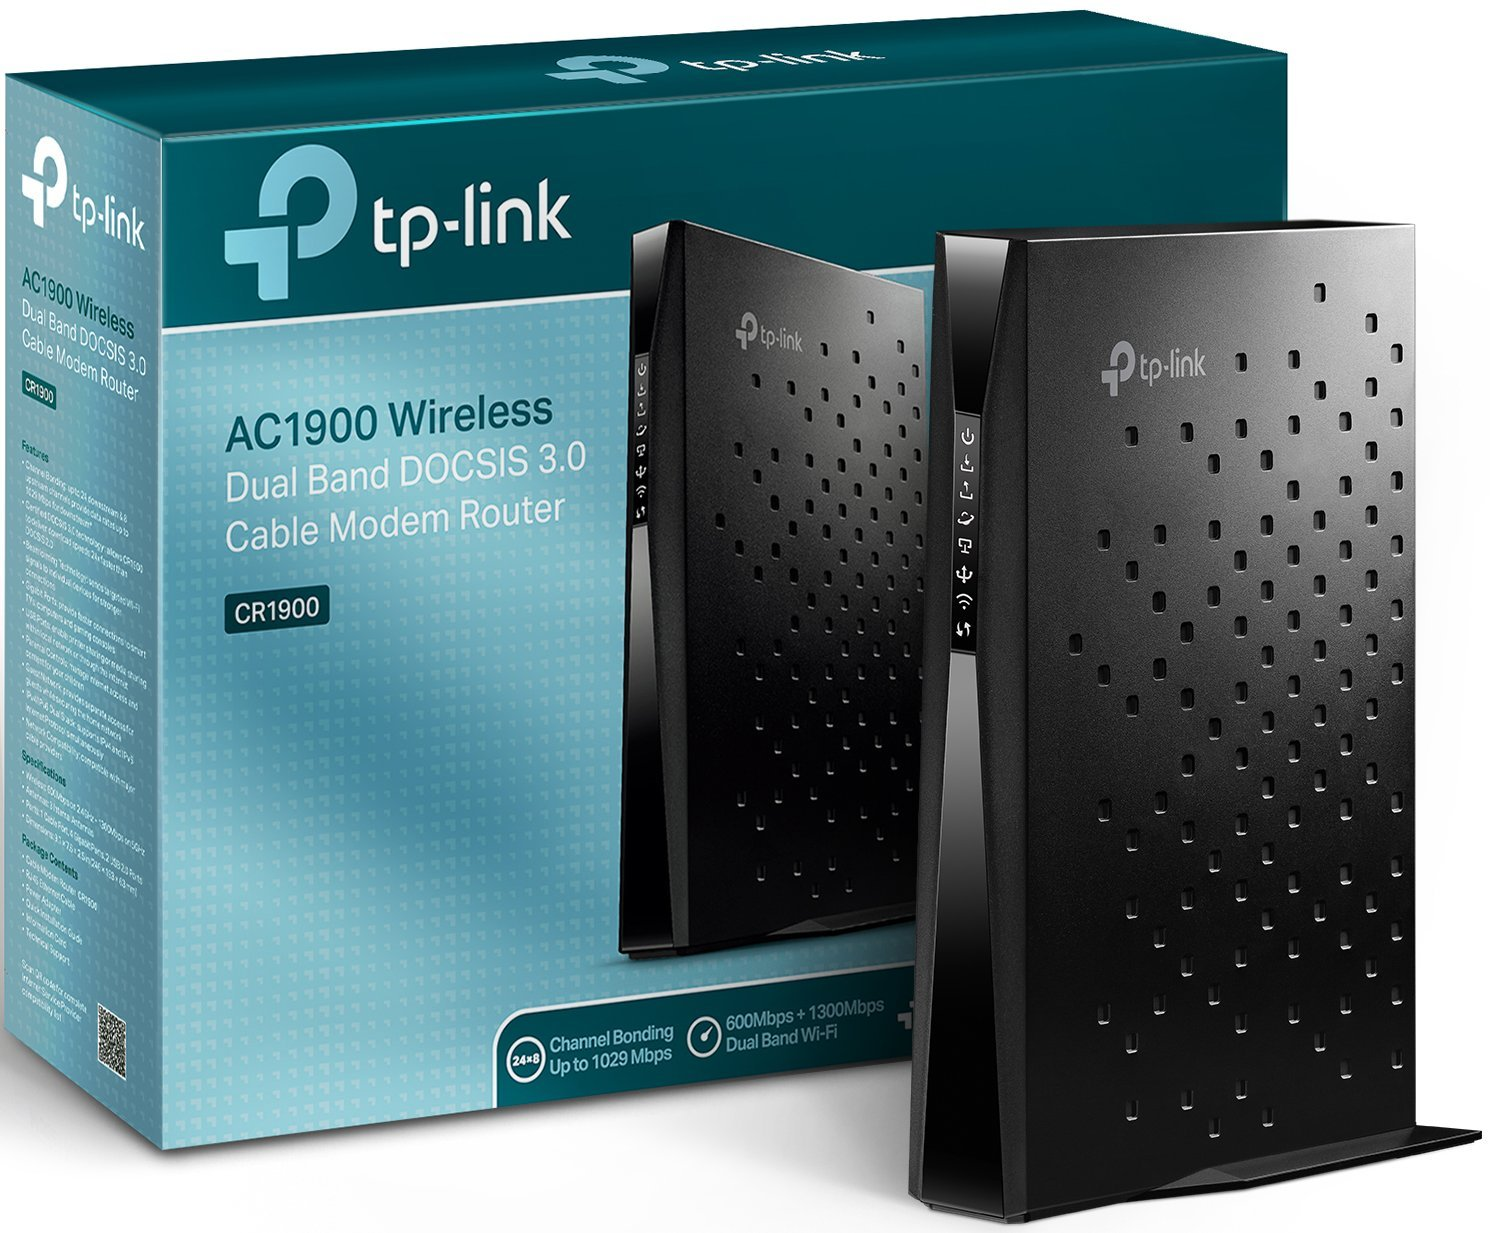 Amazon.com: TP-Link Archer CR1900 24x8 DOCSIS3.0 AC1900 Wireless Wi ...